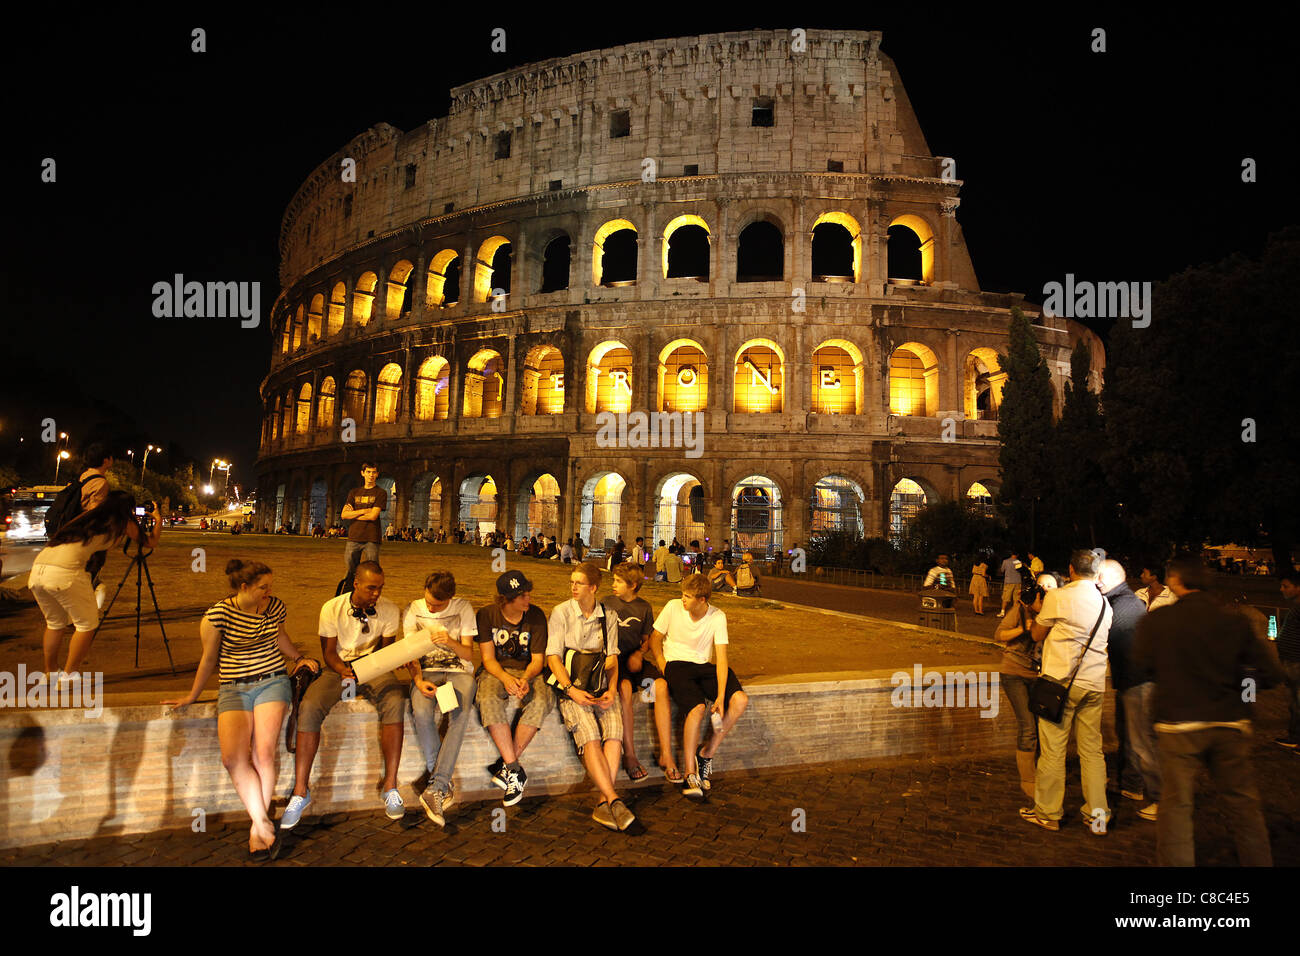 Tourists outside the Colosseum in Rome, Italy at night. - Stock Image